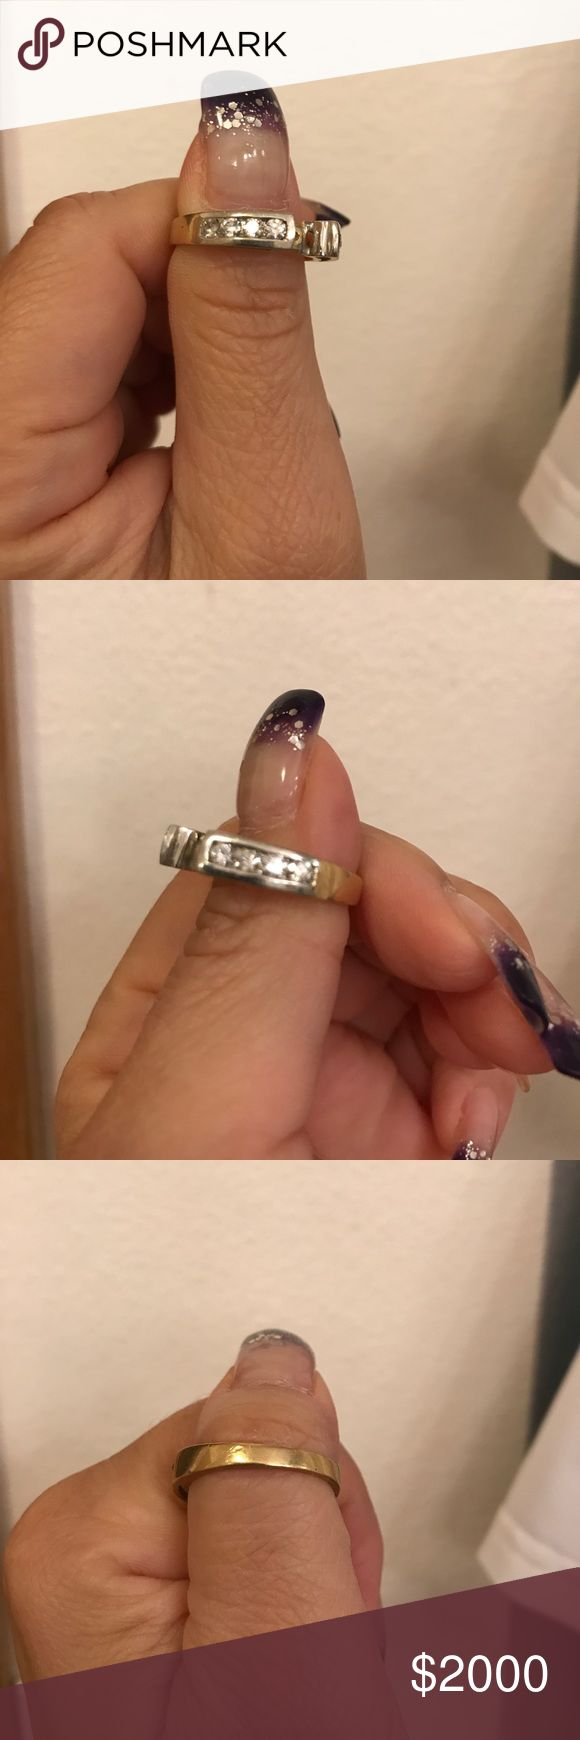 🔥🔥FLASH SALE🔥🔥Lovingly used wedding ring set No. You are not seeing double. Band is yellow 14k Gold. Sides holding YOUR STONE is white 14k gold. Sized 8 or 8.5. I lost weight so I transferred back to a 6.5. Waiting for a diamond to make its home here. ❤️ FLAWLESS COLORLESS DIAMONDS ON SIDE. TOTAL WEIGHT APPROX. 1 carat. Zales Jewelry Rings